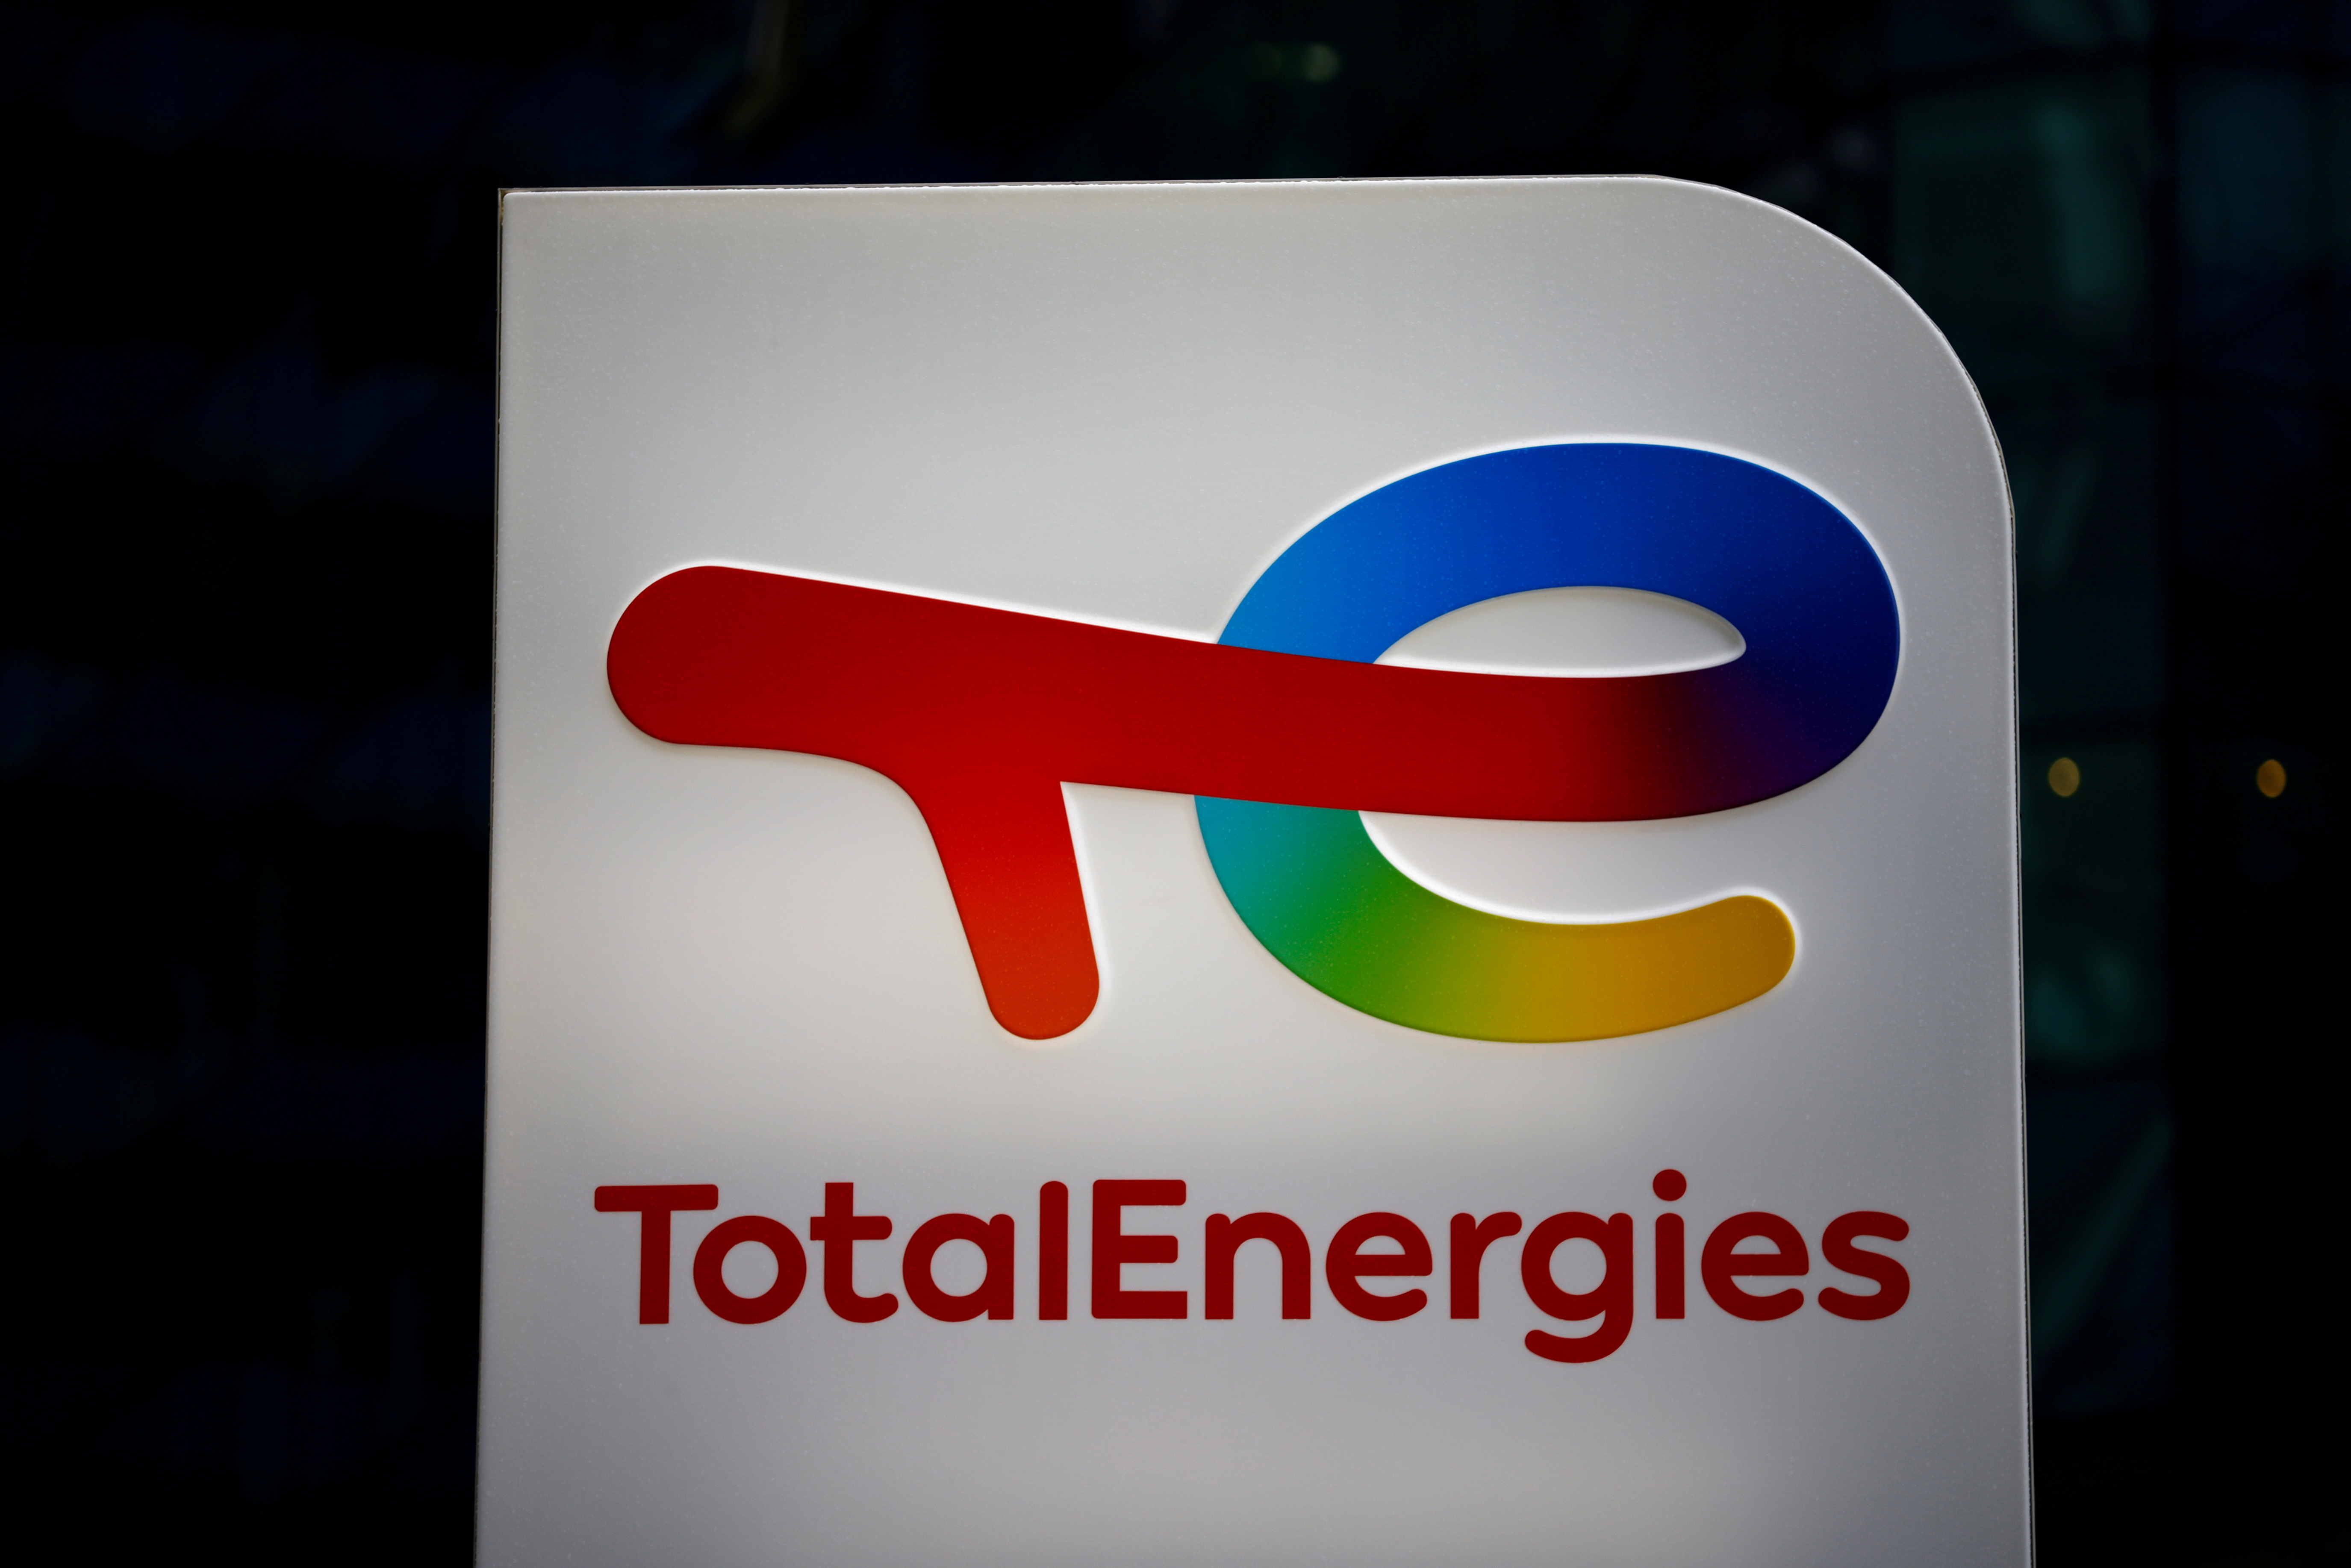 The logo of French oil and gas company TotalEnergies is pictured at an electric car charging station and petrol station at the financial and business district of La Defense in Courbevoie near Paris, France, June 22, 2021. REUTERS/Gonzalo Fuentes/File Photo